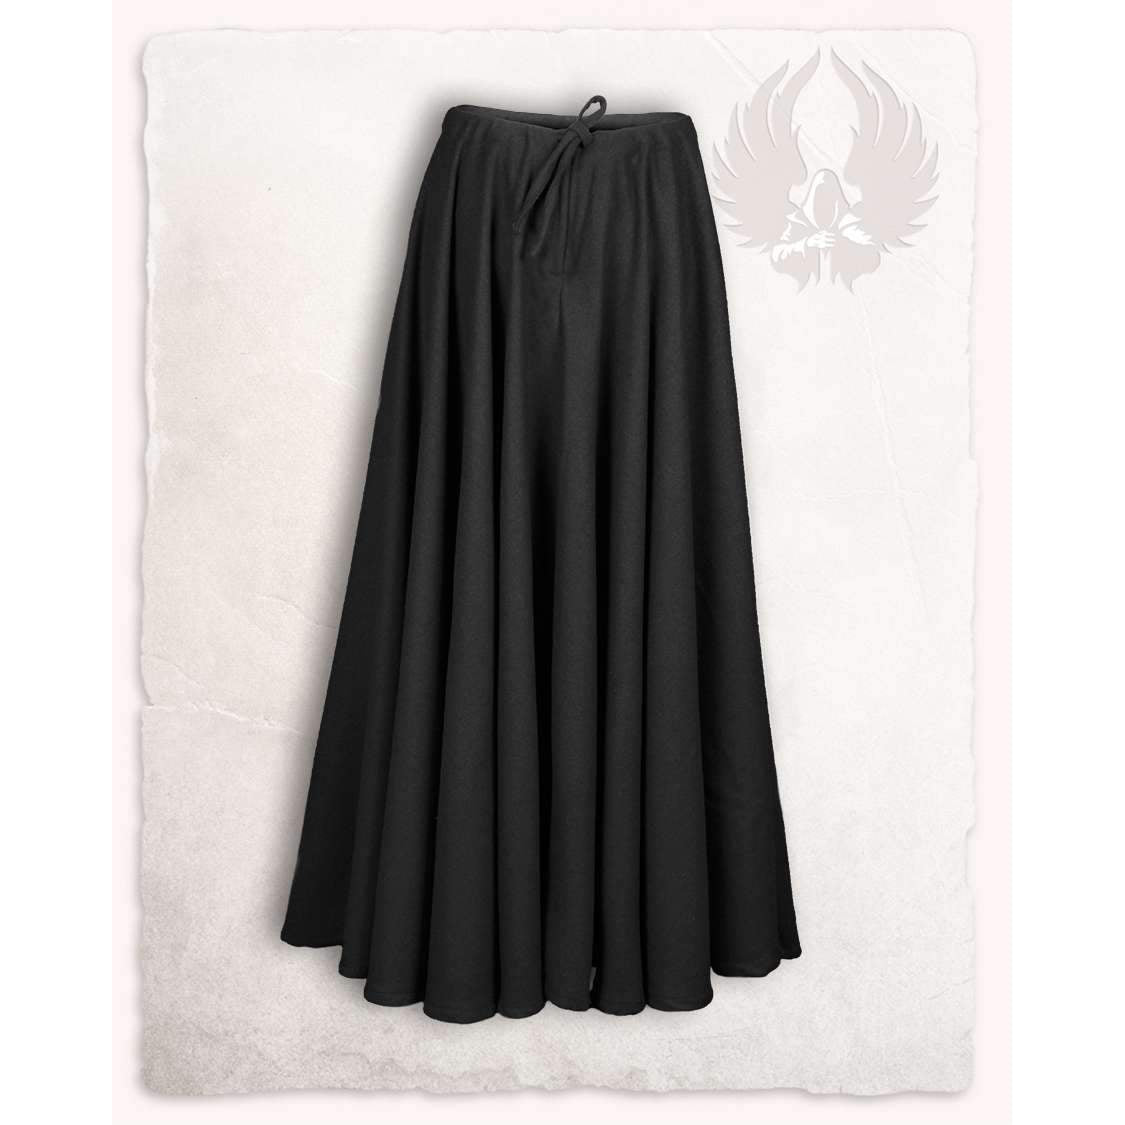 Ursula skirt wool